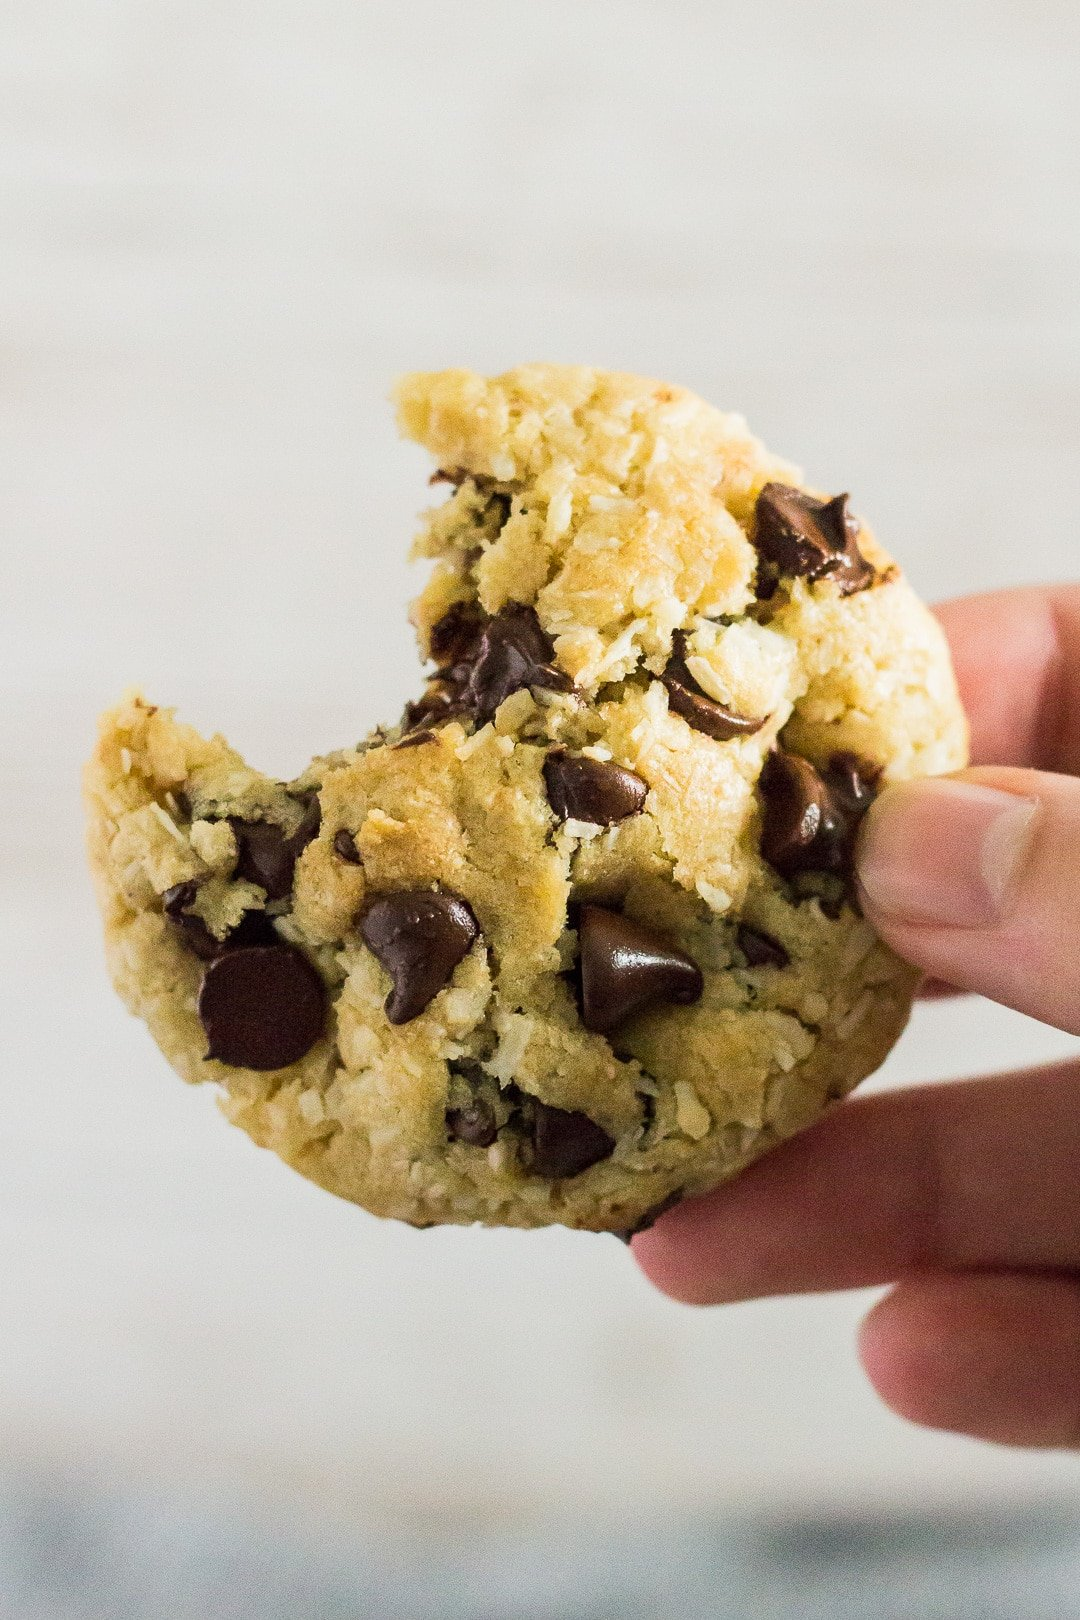 A bitten Coconut Chocolate Chip Cookie being held up by hand.